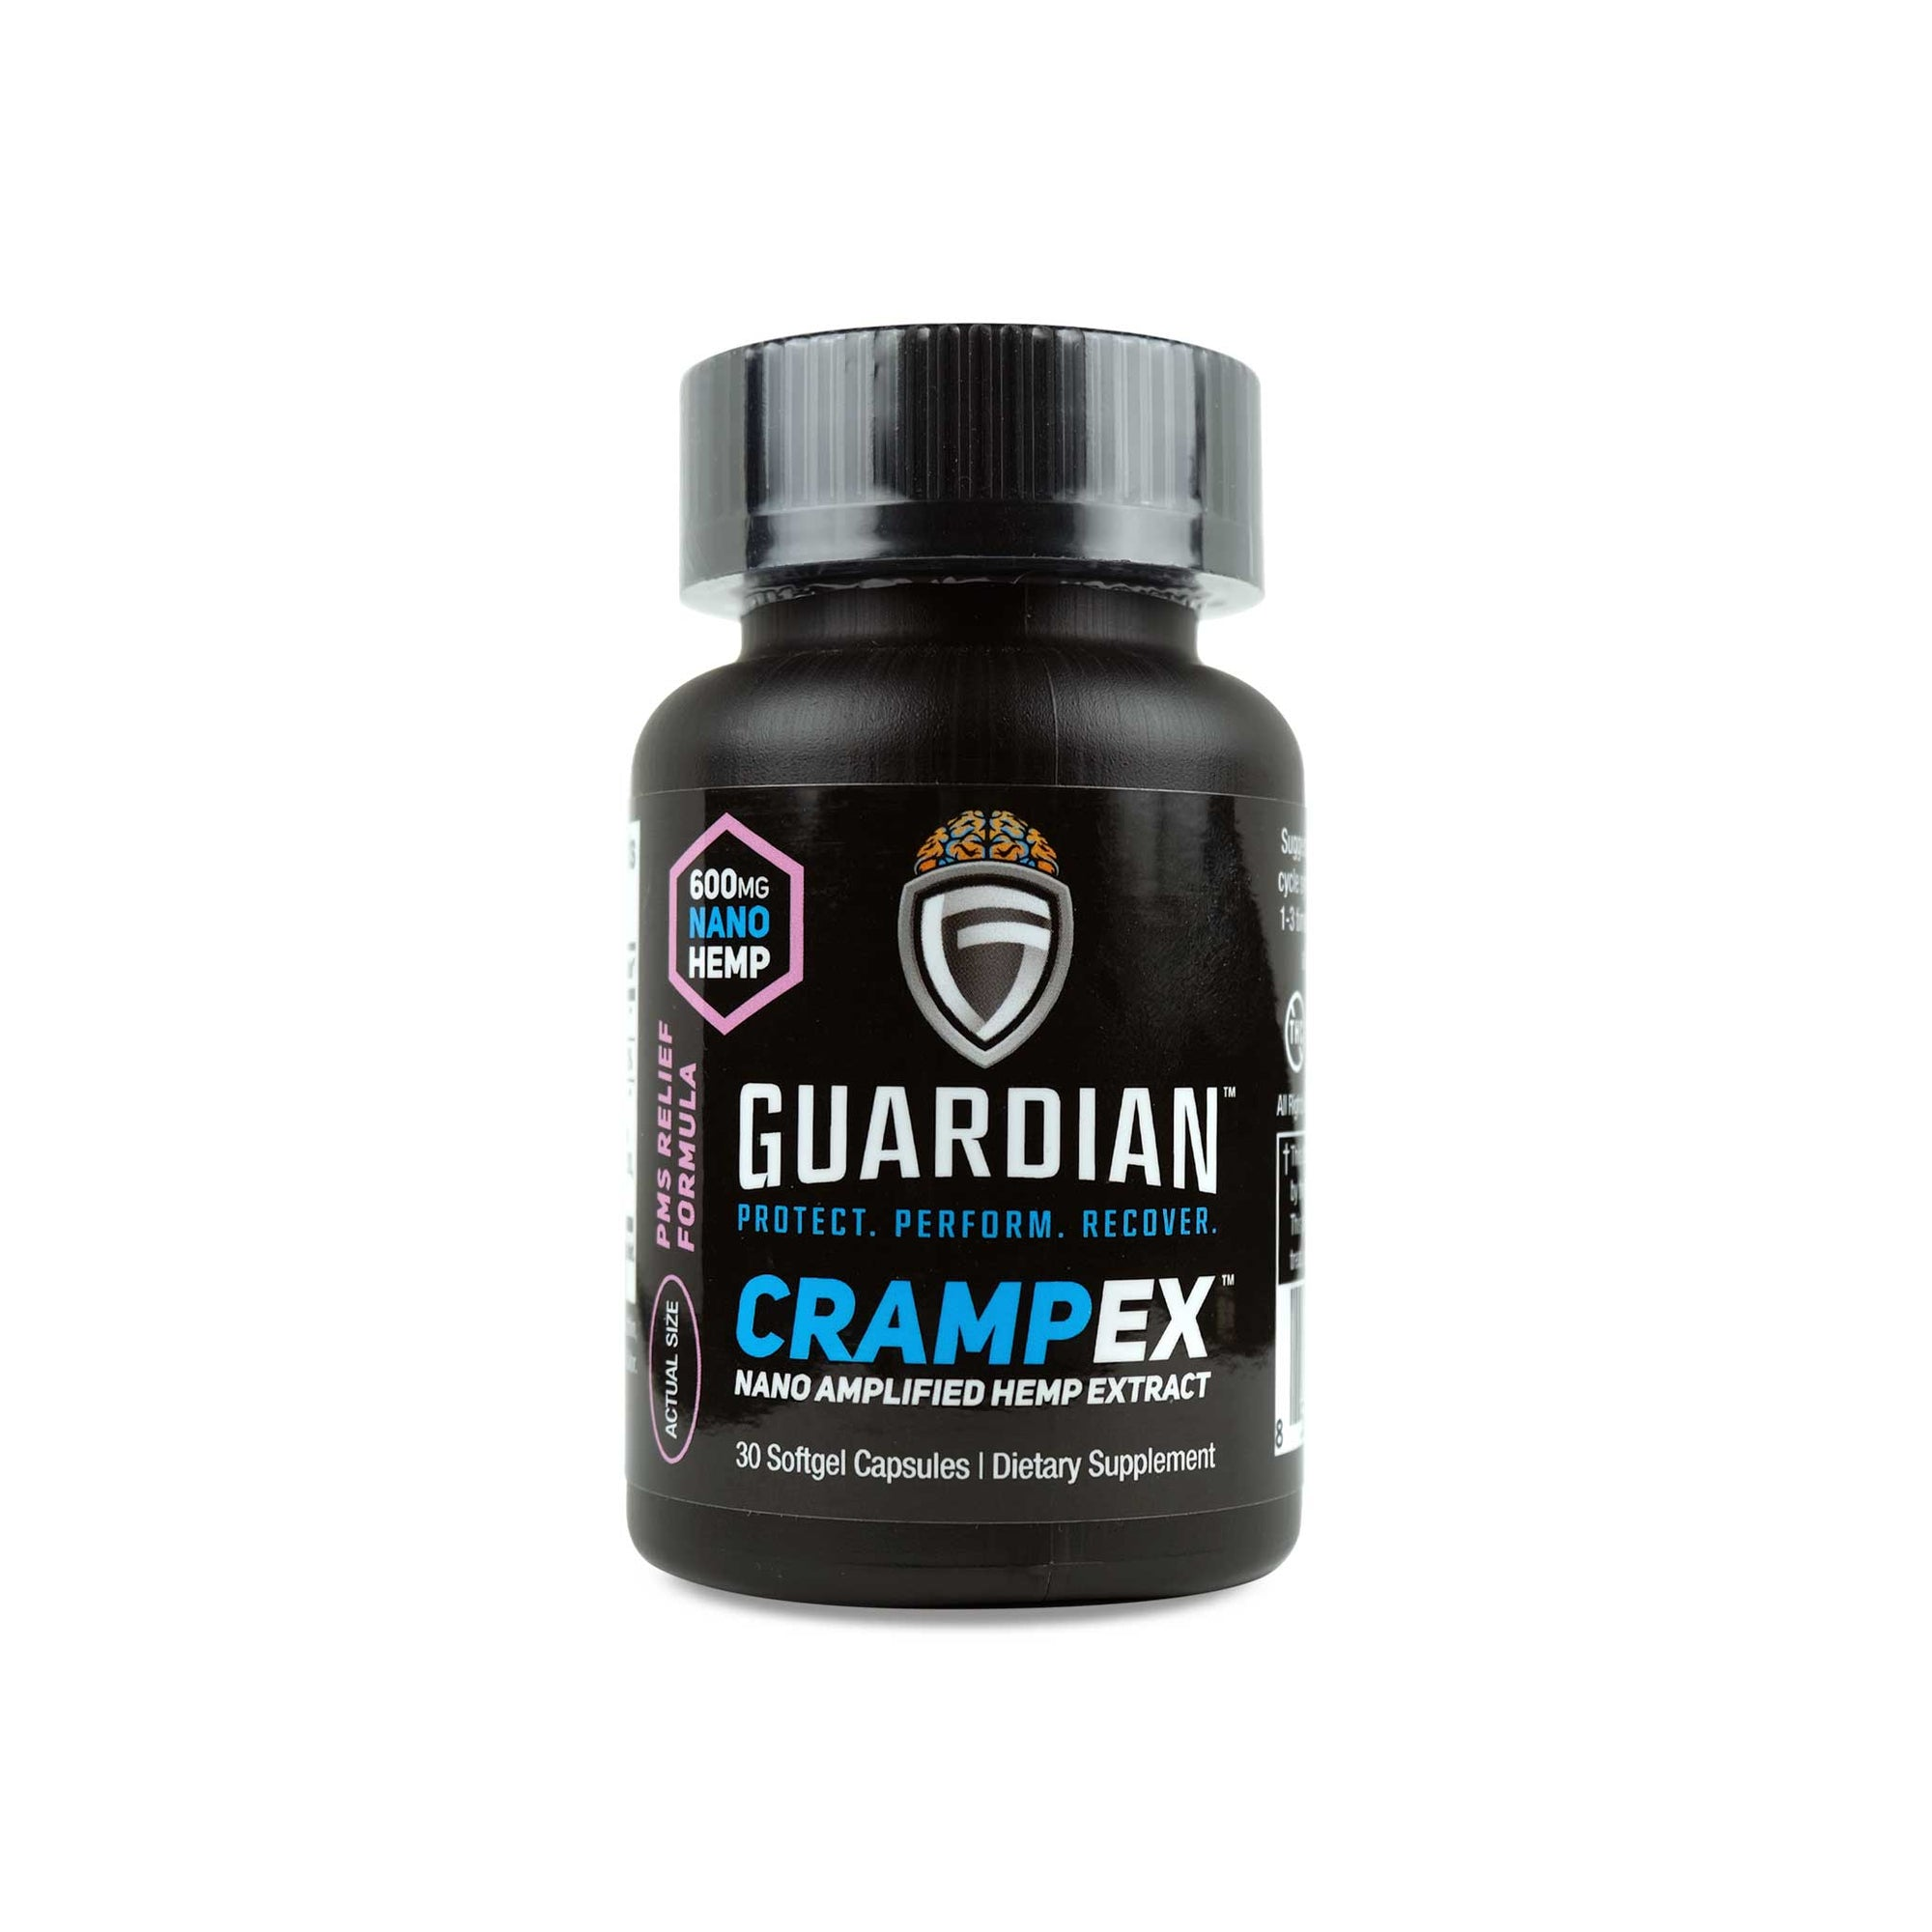 Guardian crampex front label